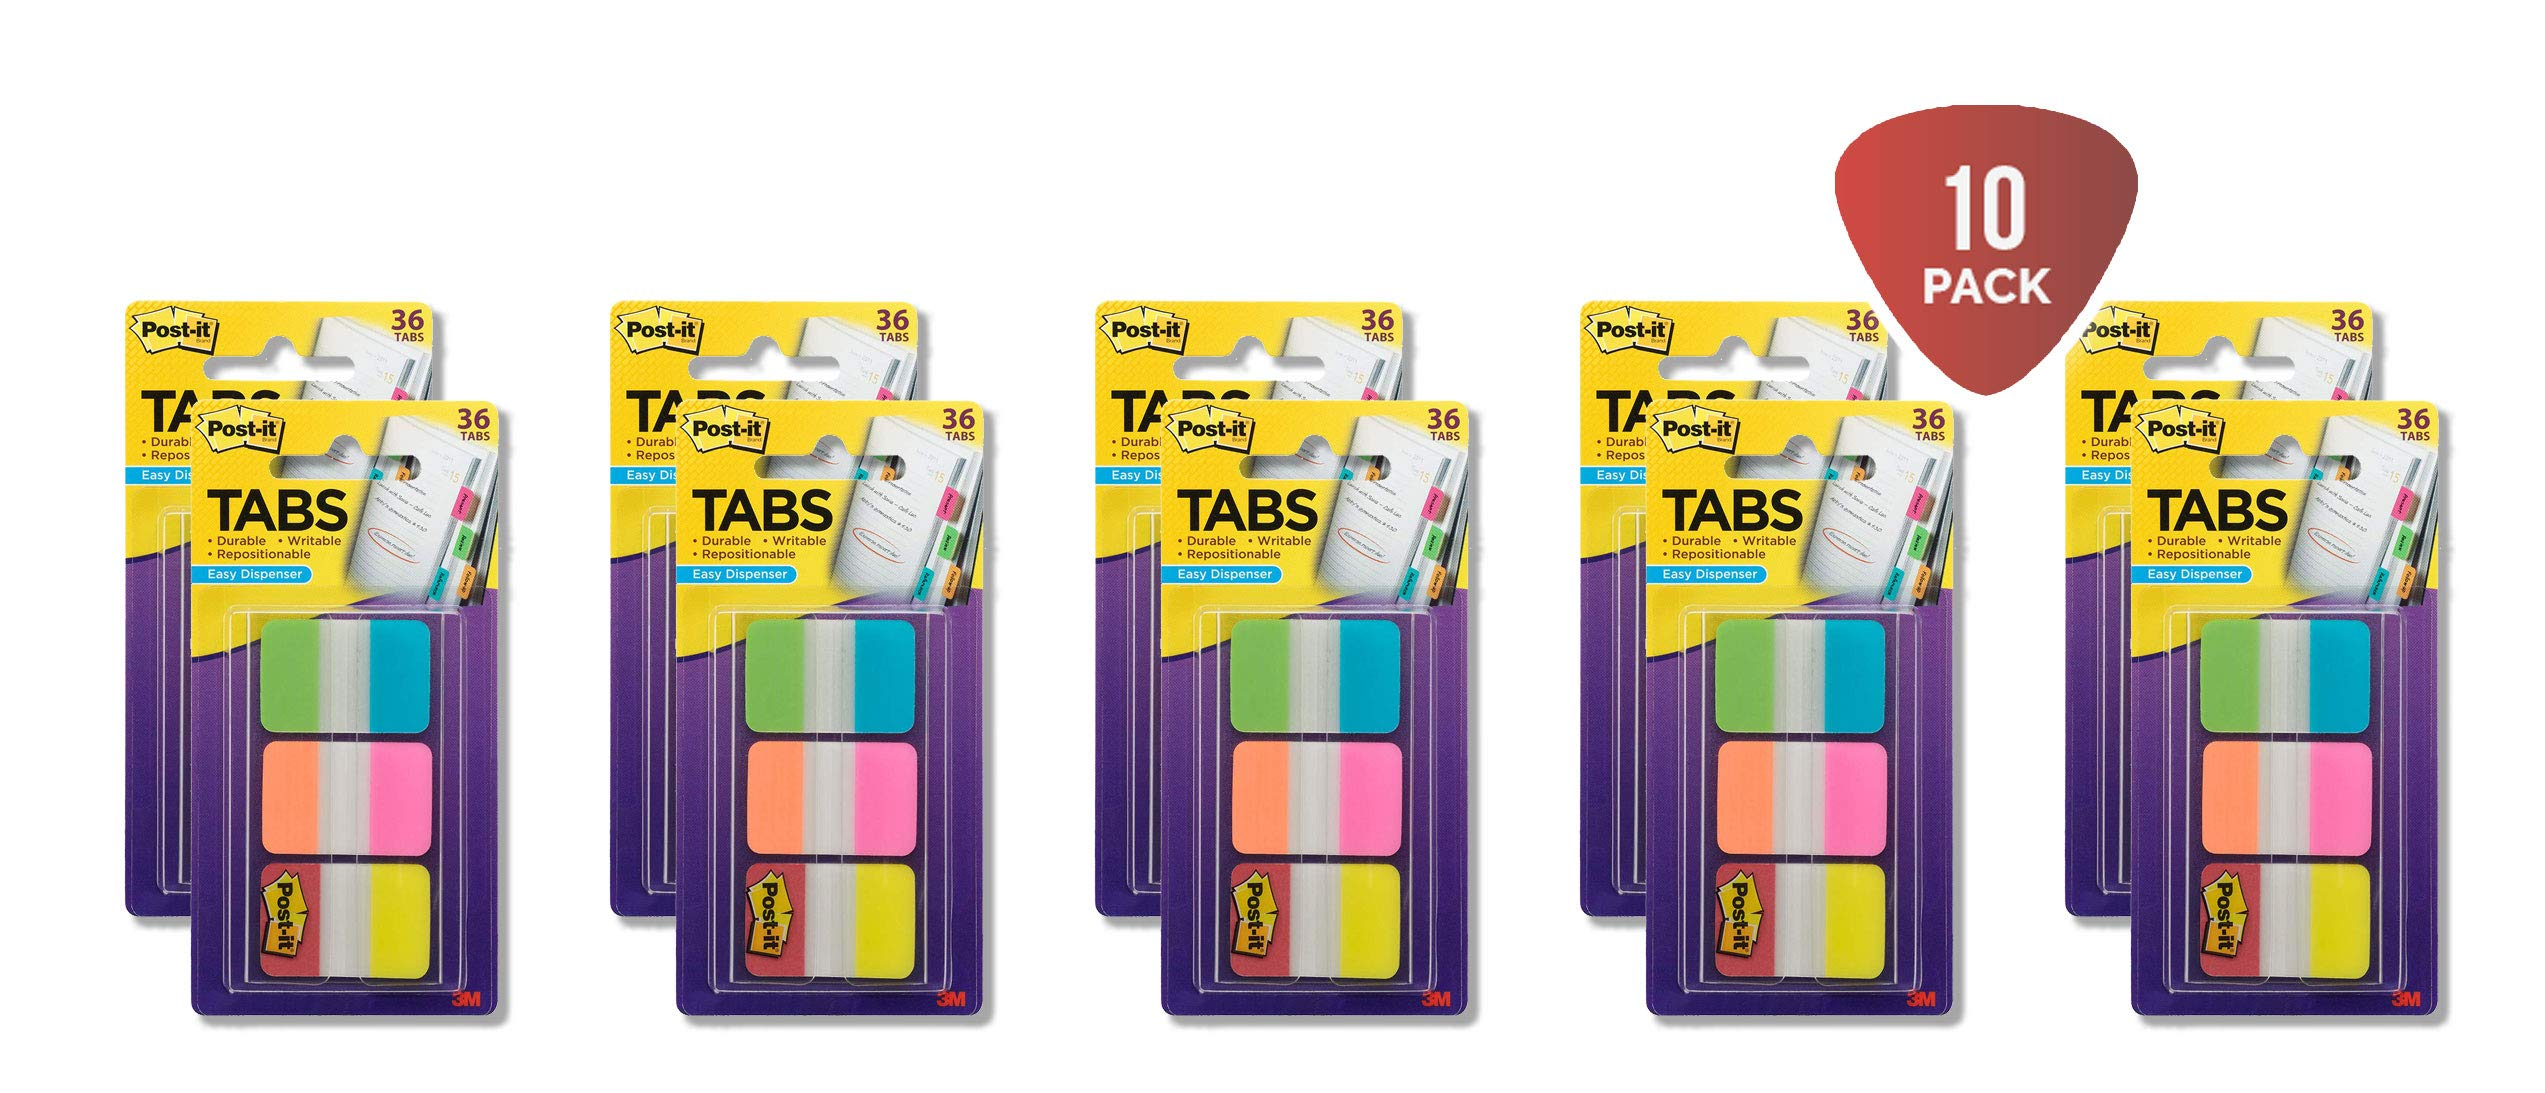 Post-it Tabs, 1 in. Solid, Aqua, Yellow, Pink, Red, Green, Orange, Durable, Writable, Repositionable, Sticks Securely, Removes Cleanly, 6/Color, 36/Dispenser, (686-ALOPRYT) 10-PACK by Post-it